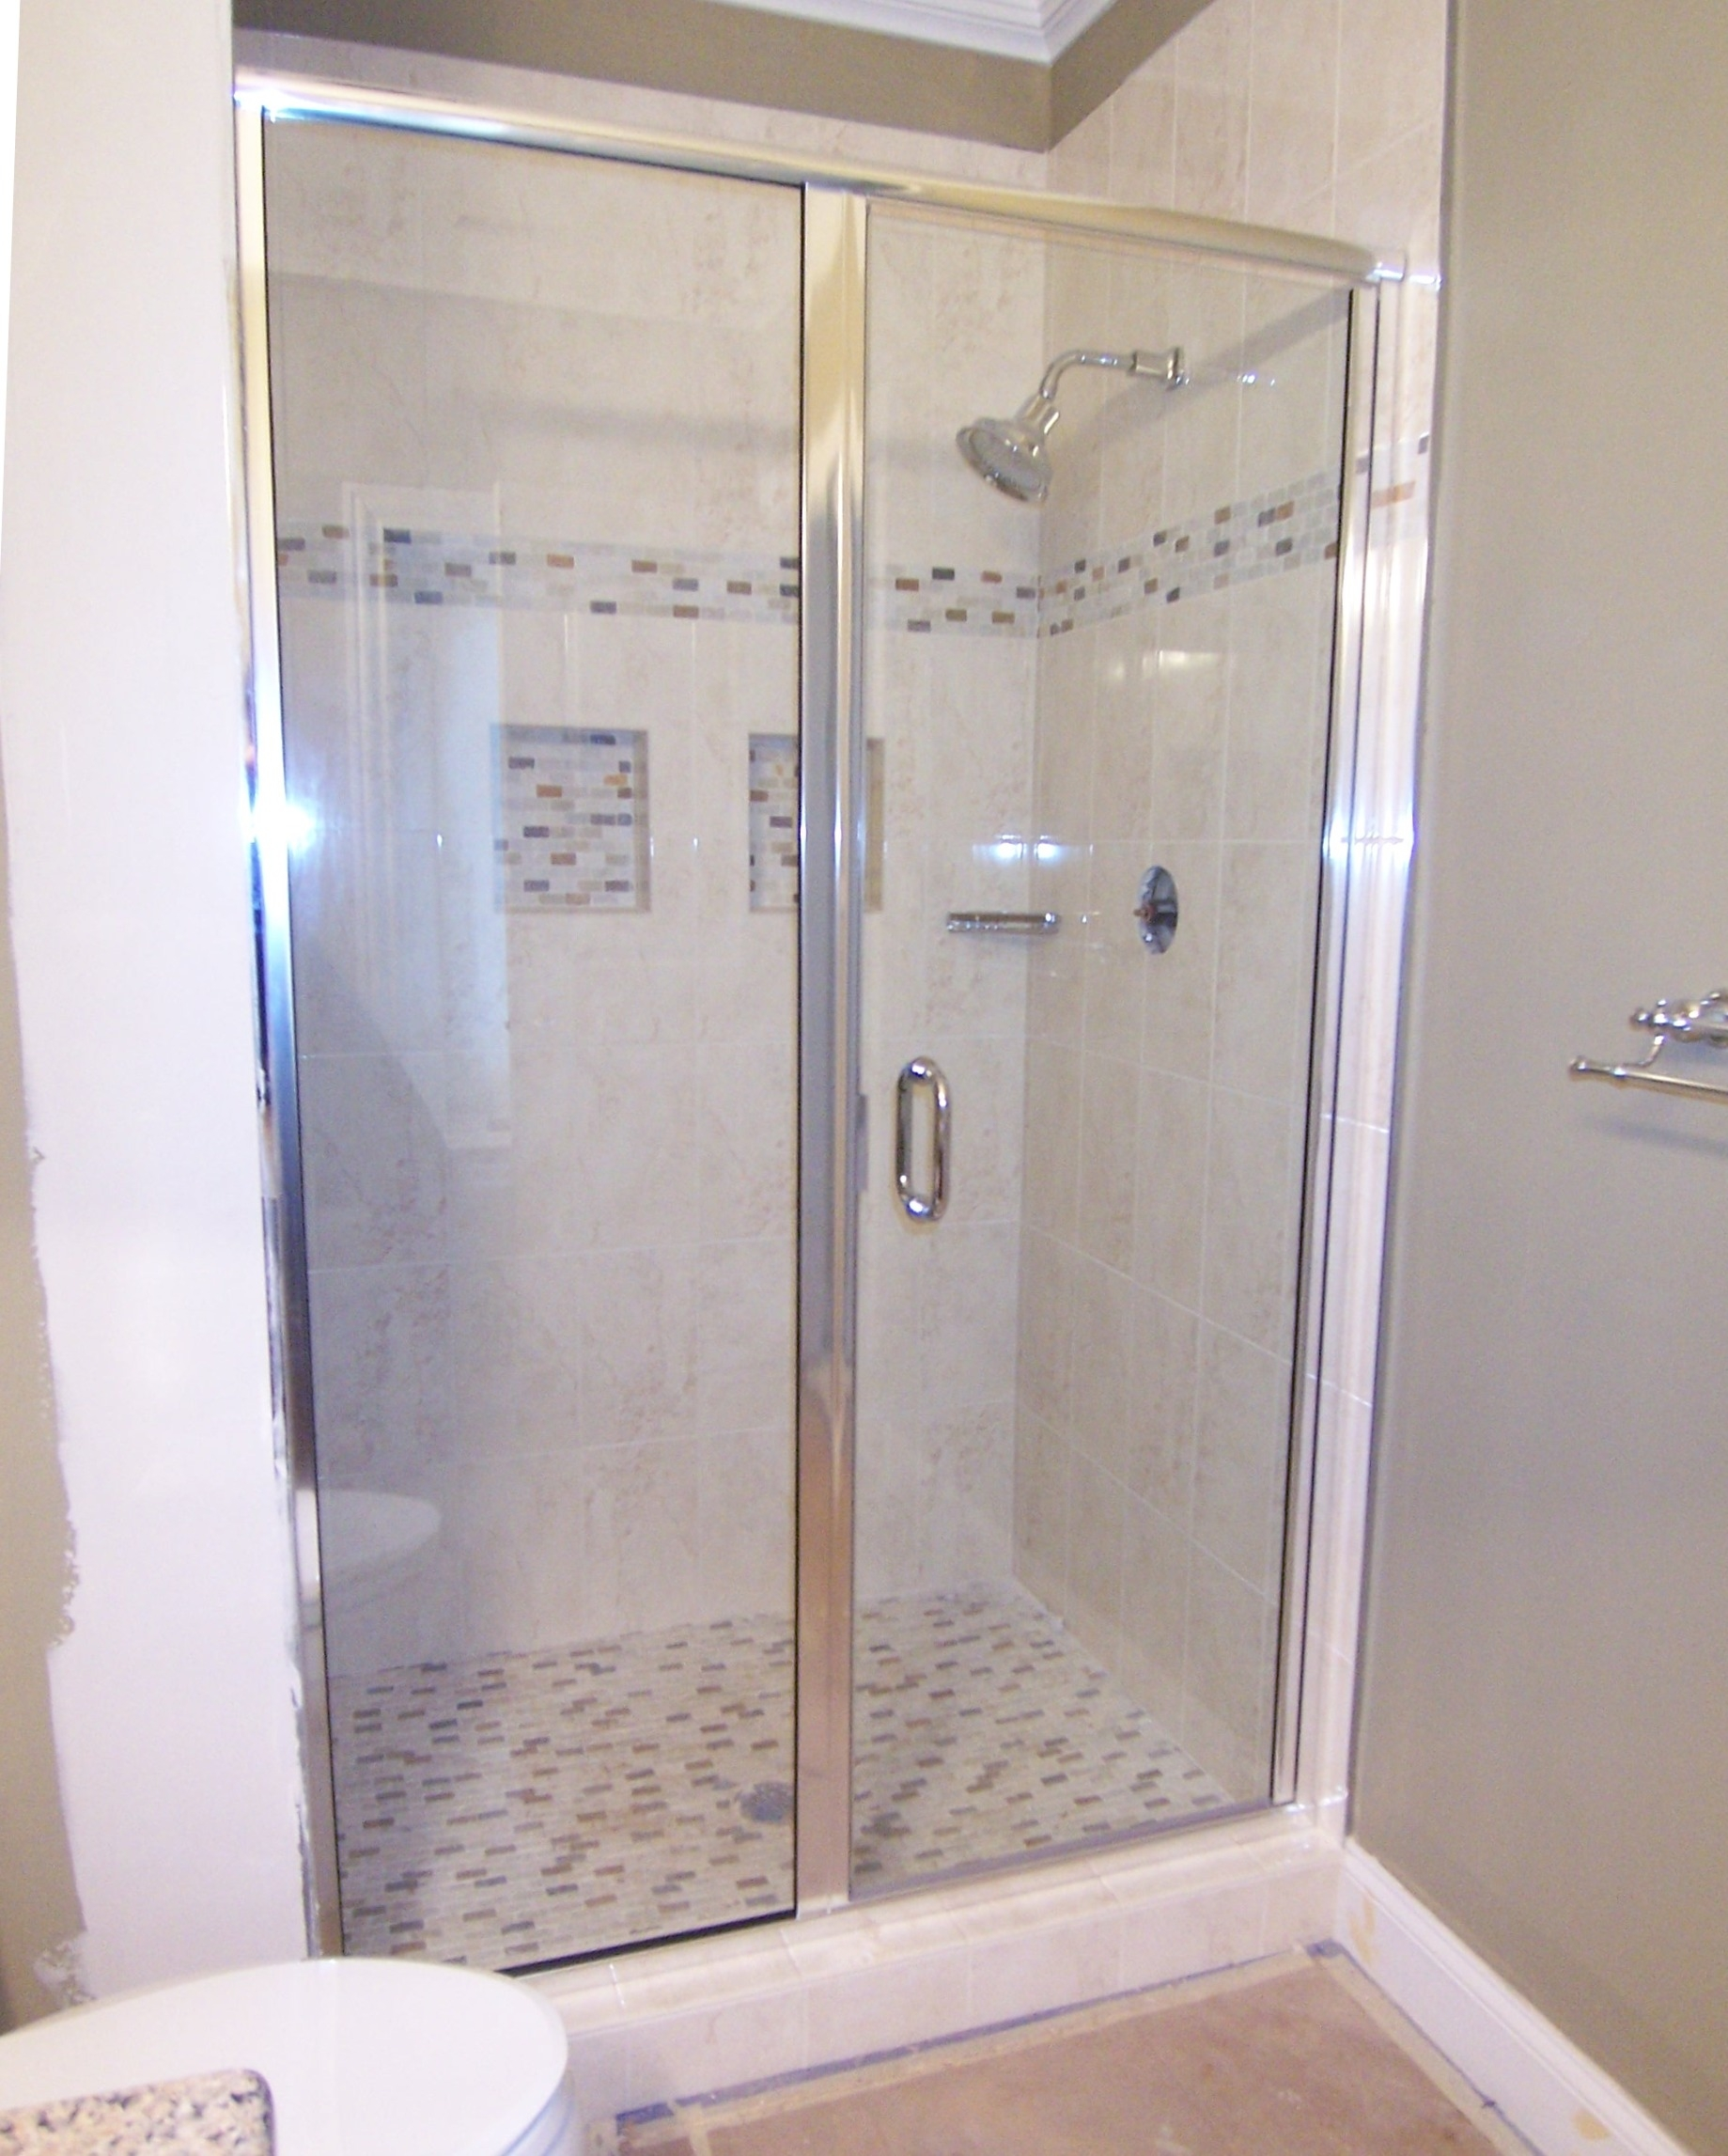 Permalink to Shower Doors Frameless Vs Framed